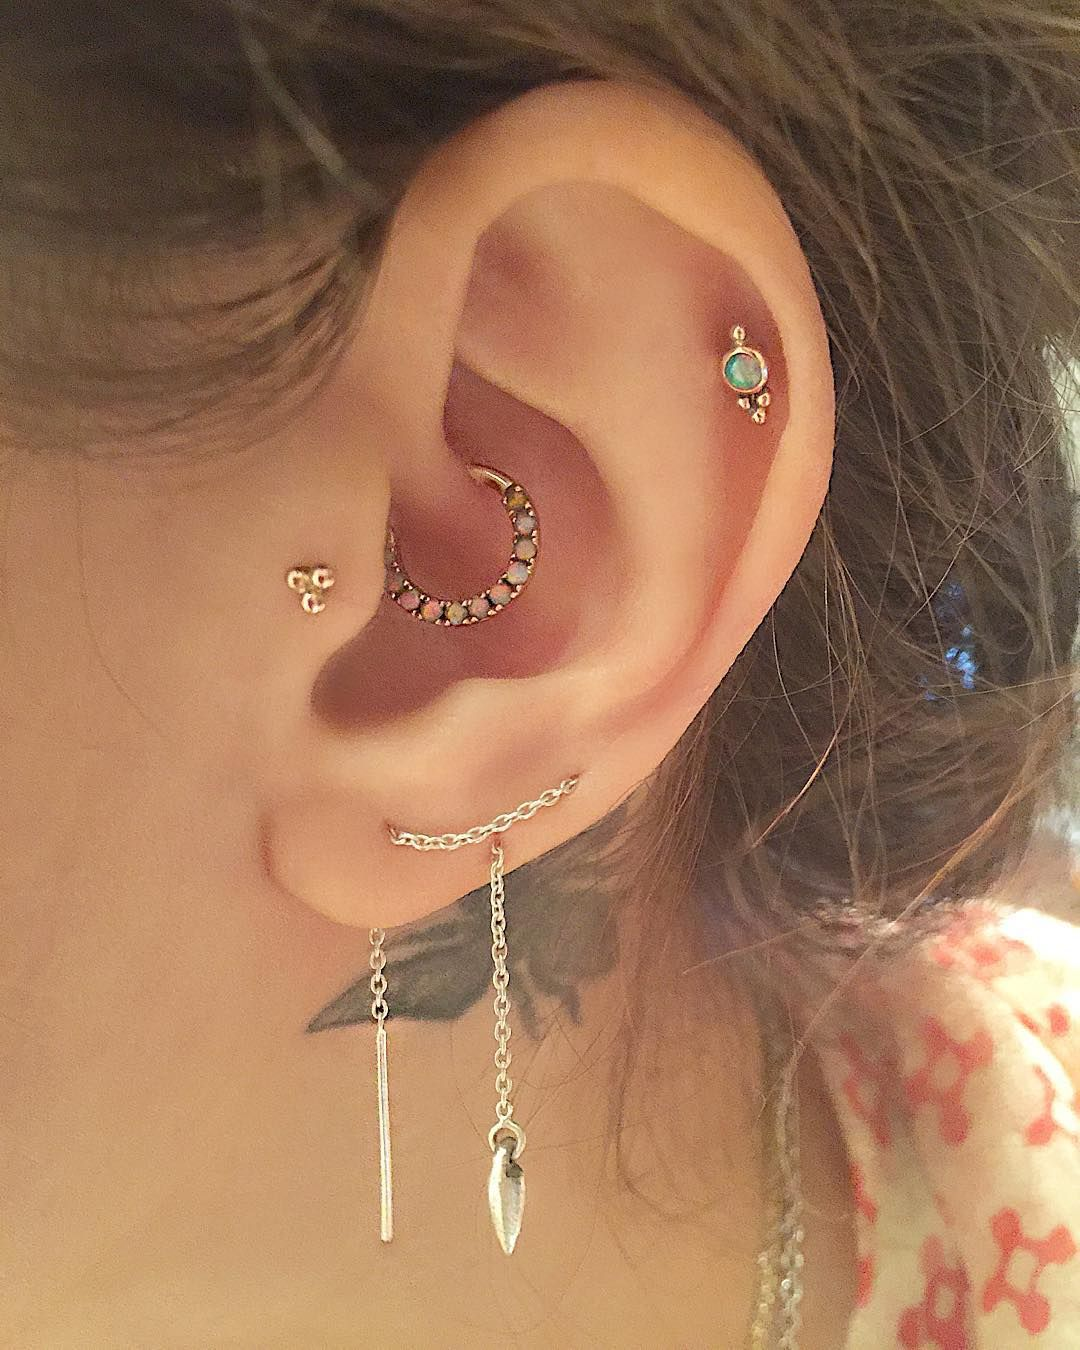 Piercing jewelry names  Finding new ways to wear our ear threader for ss pamelalove